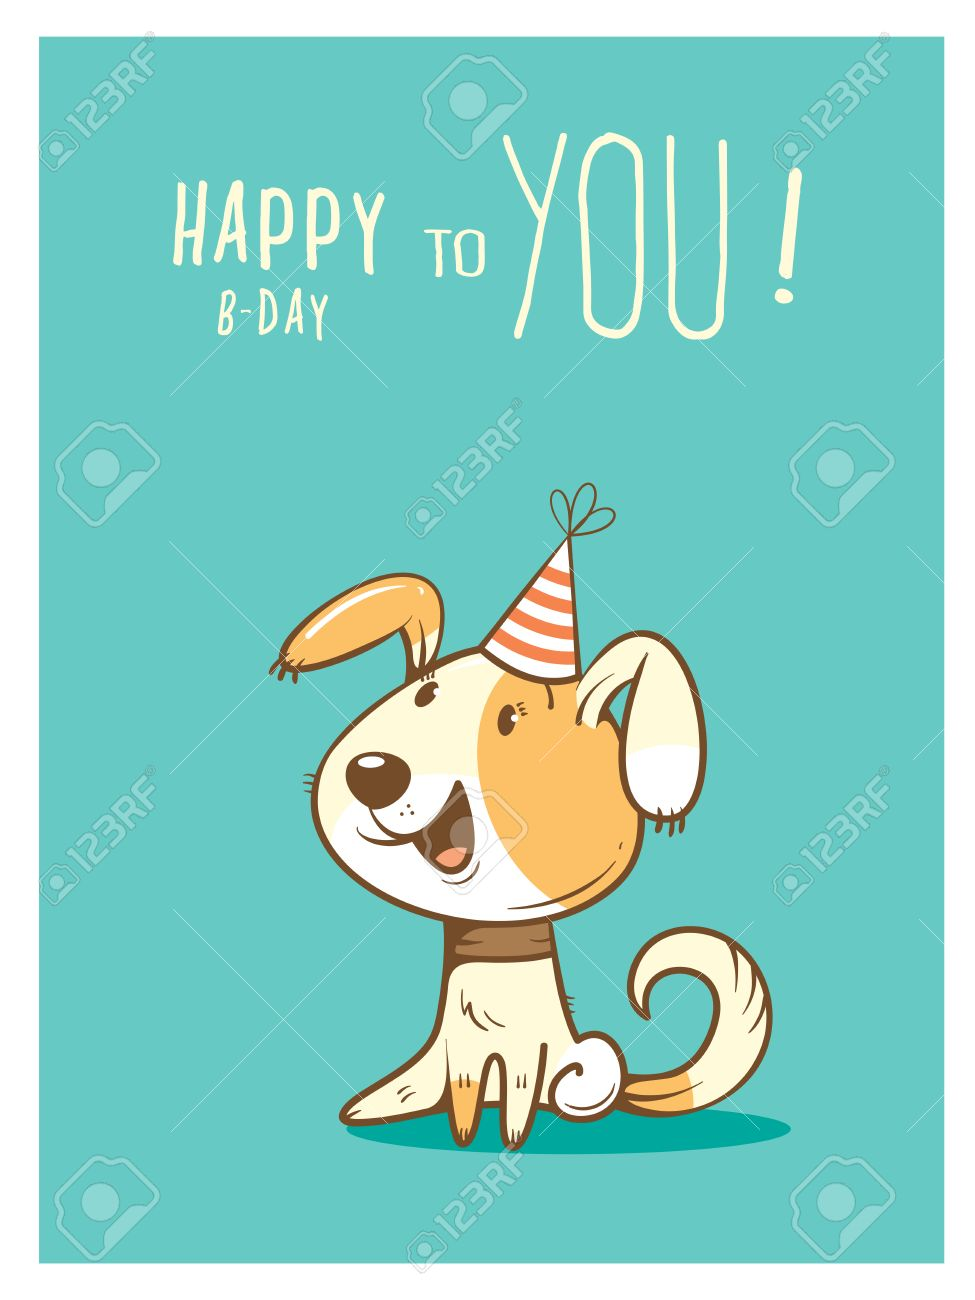 Birthday Card With Cute Cartoon Dog In Party Hat Vector Contour Colorful Image Little